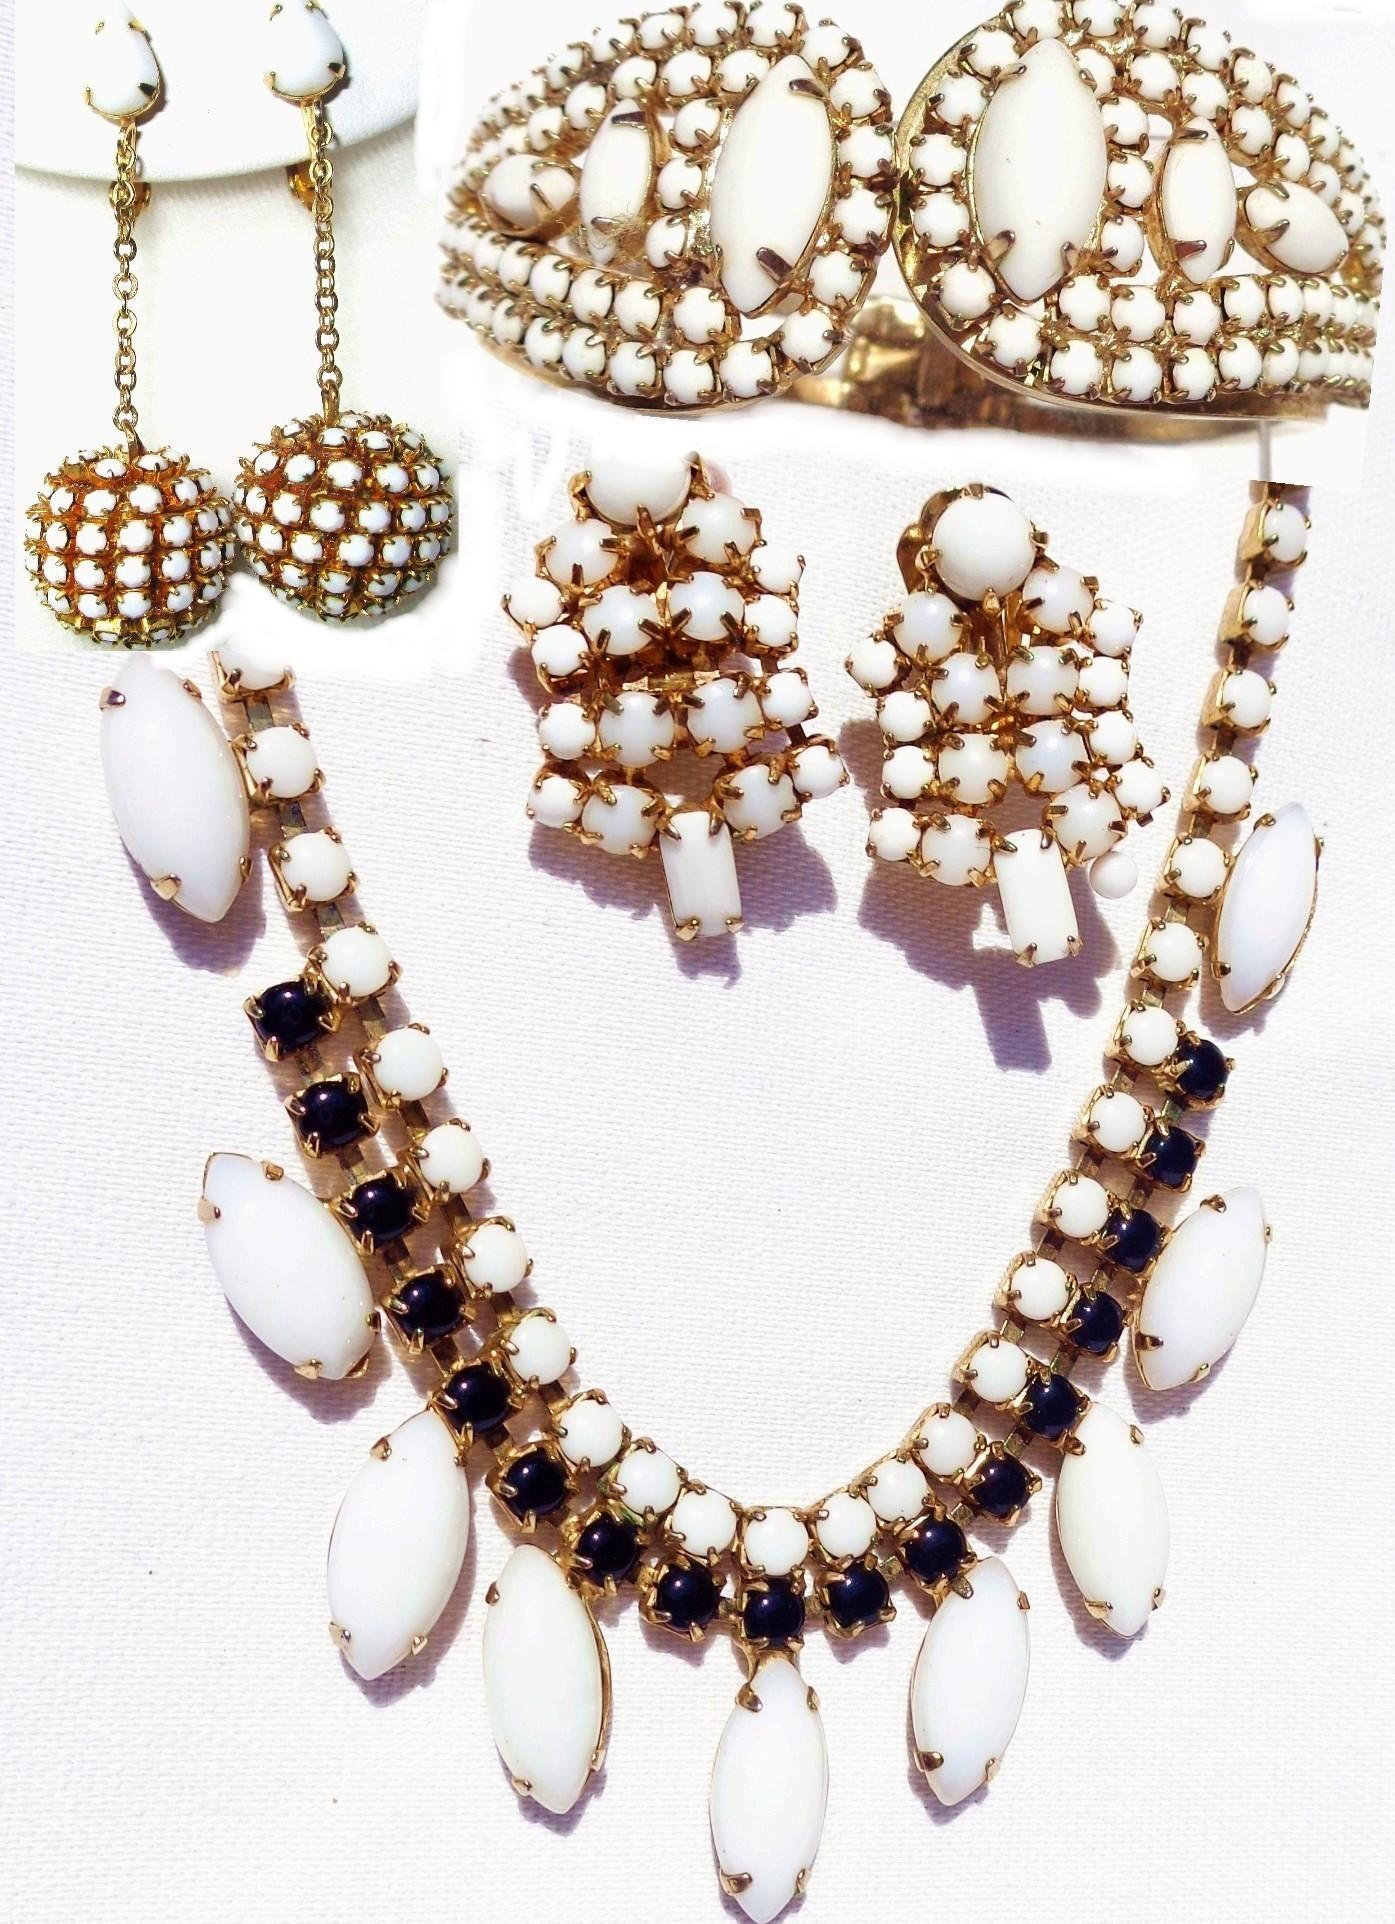 Vintage 4-piece Milk Glass in Gold tone, Necklace,2- Earrings and Bracelet